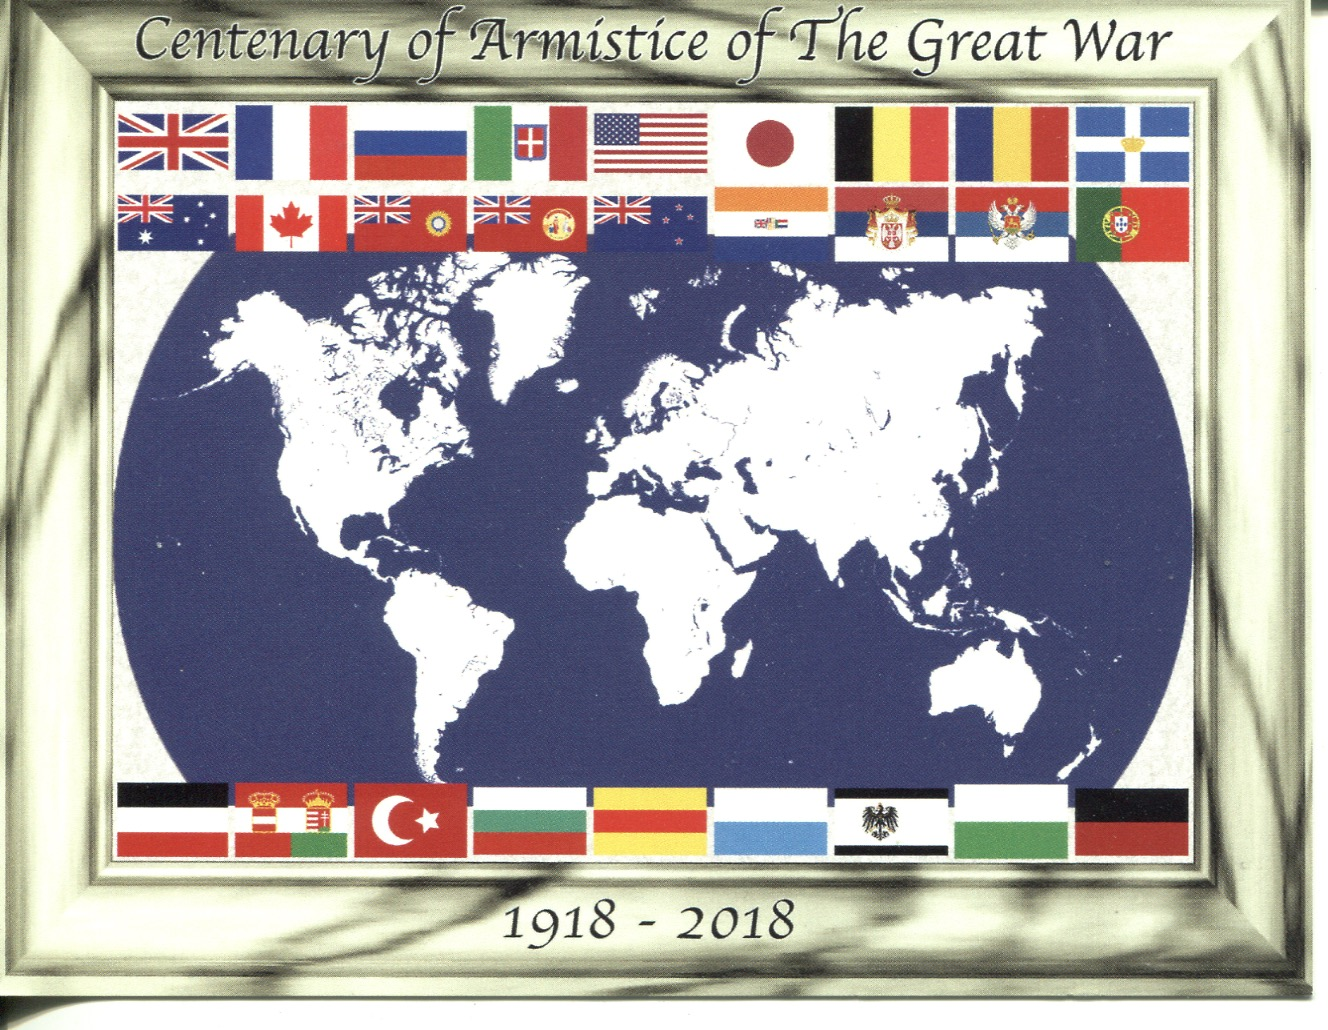 Centenary of Armistice of the Great War (WWI)